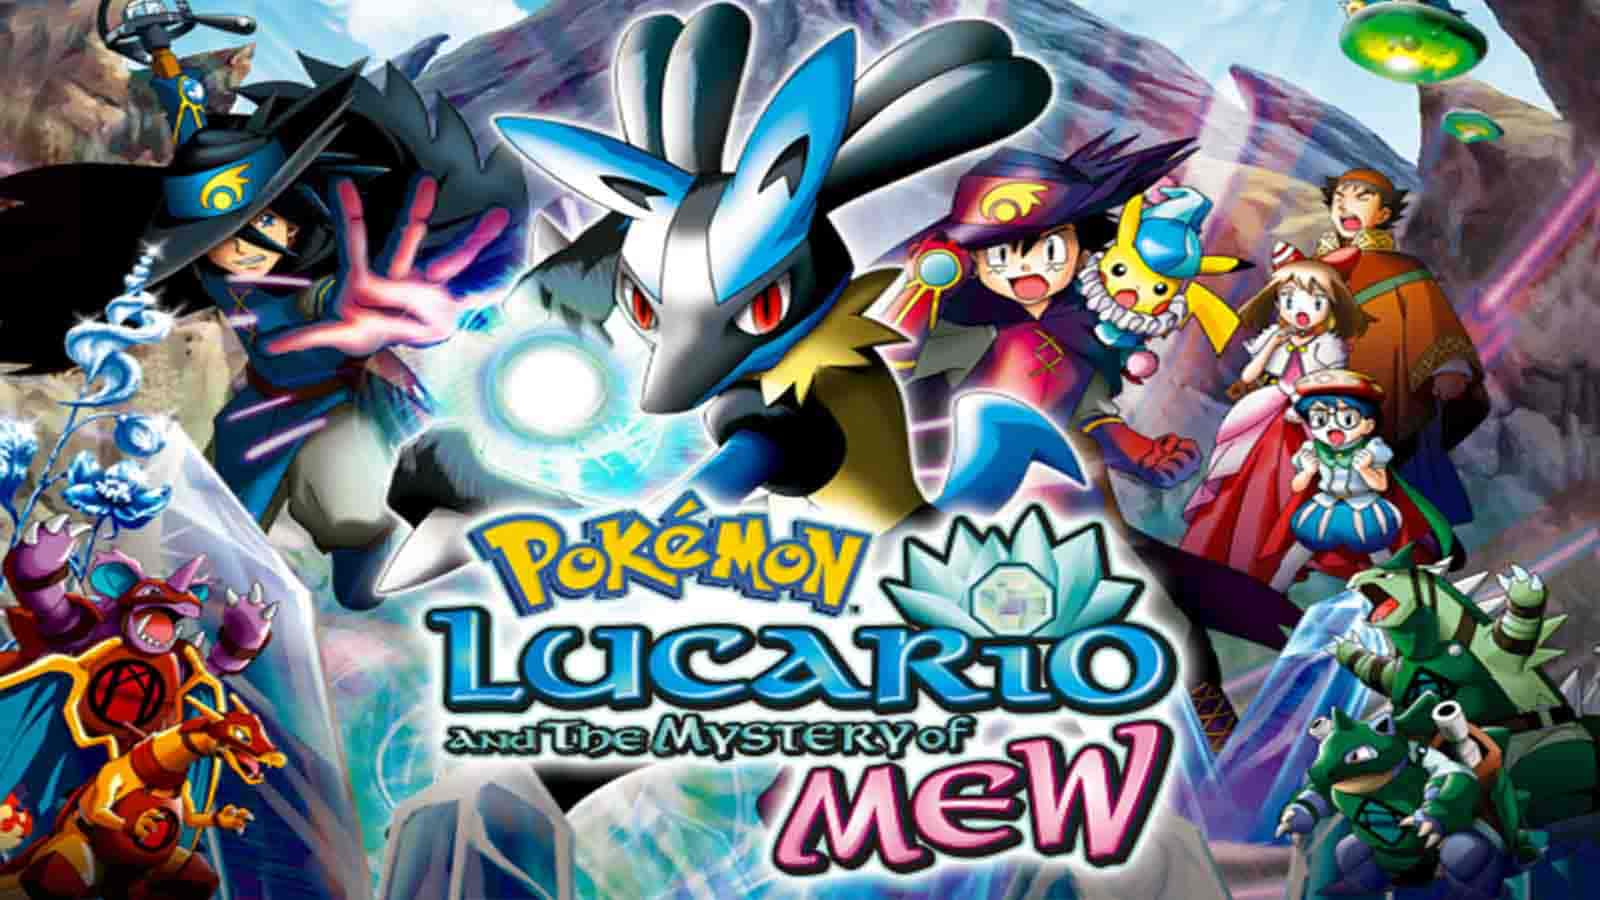 Pokemon Movie 8 Lucario Ki Toofani Shakti Hindi 360p 480p 720p 1080p Download